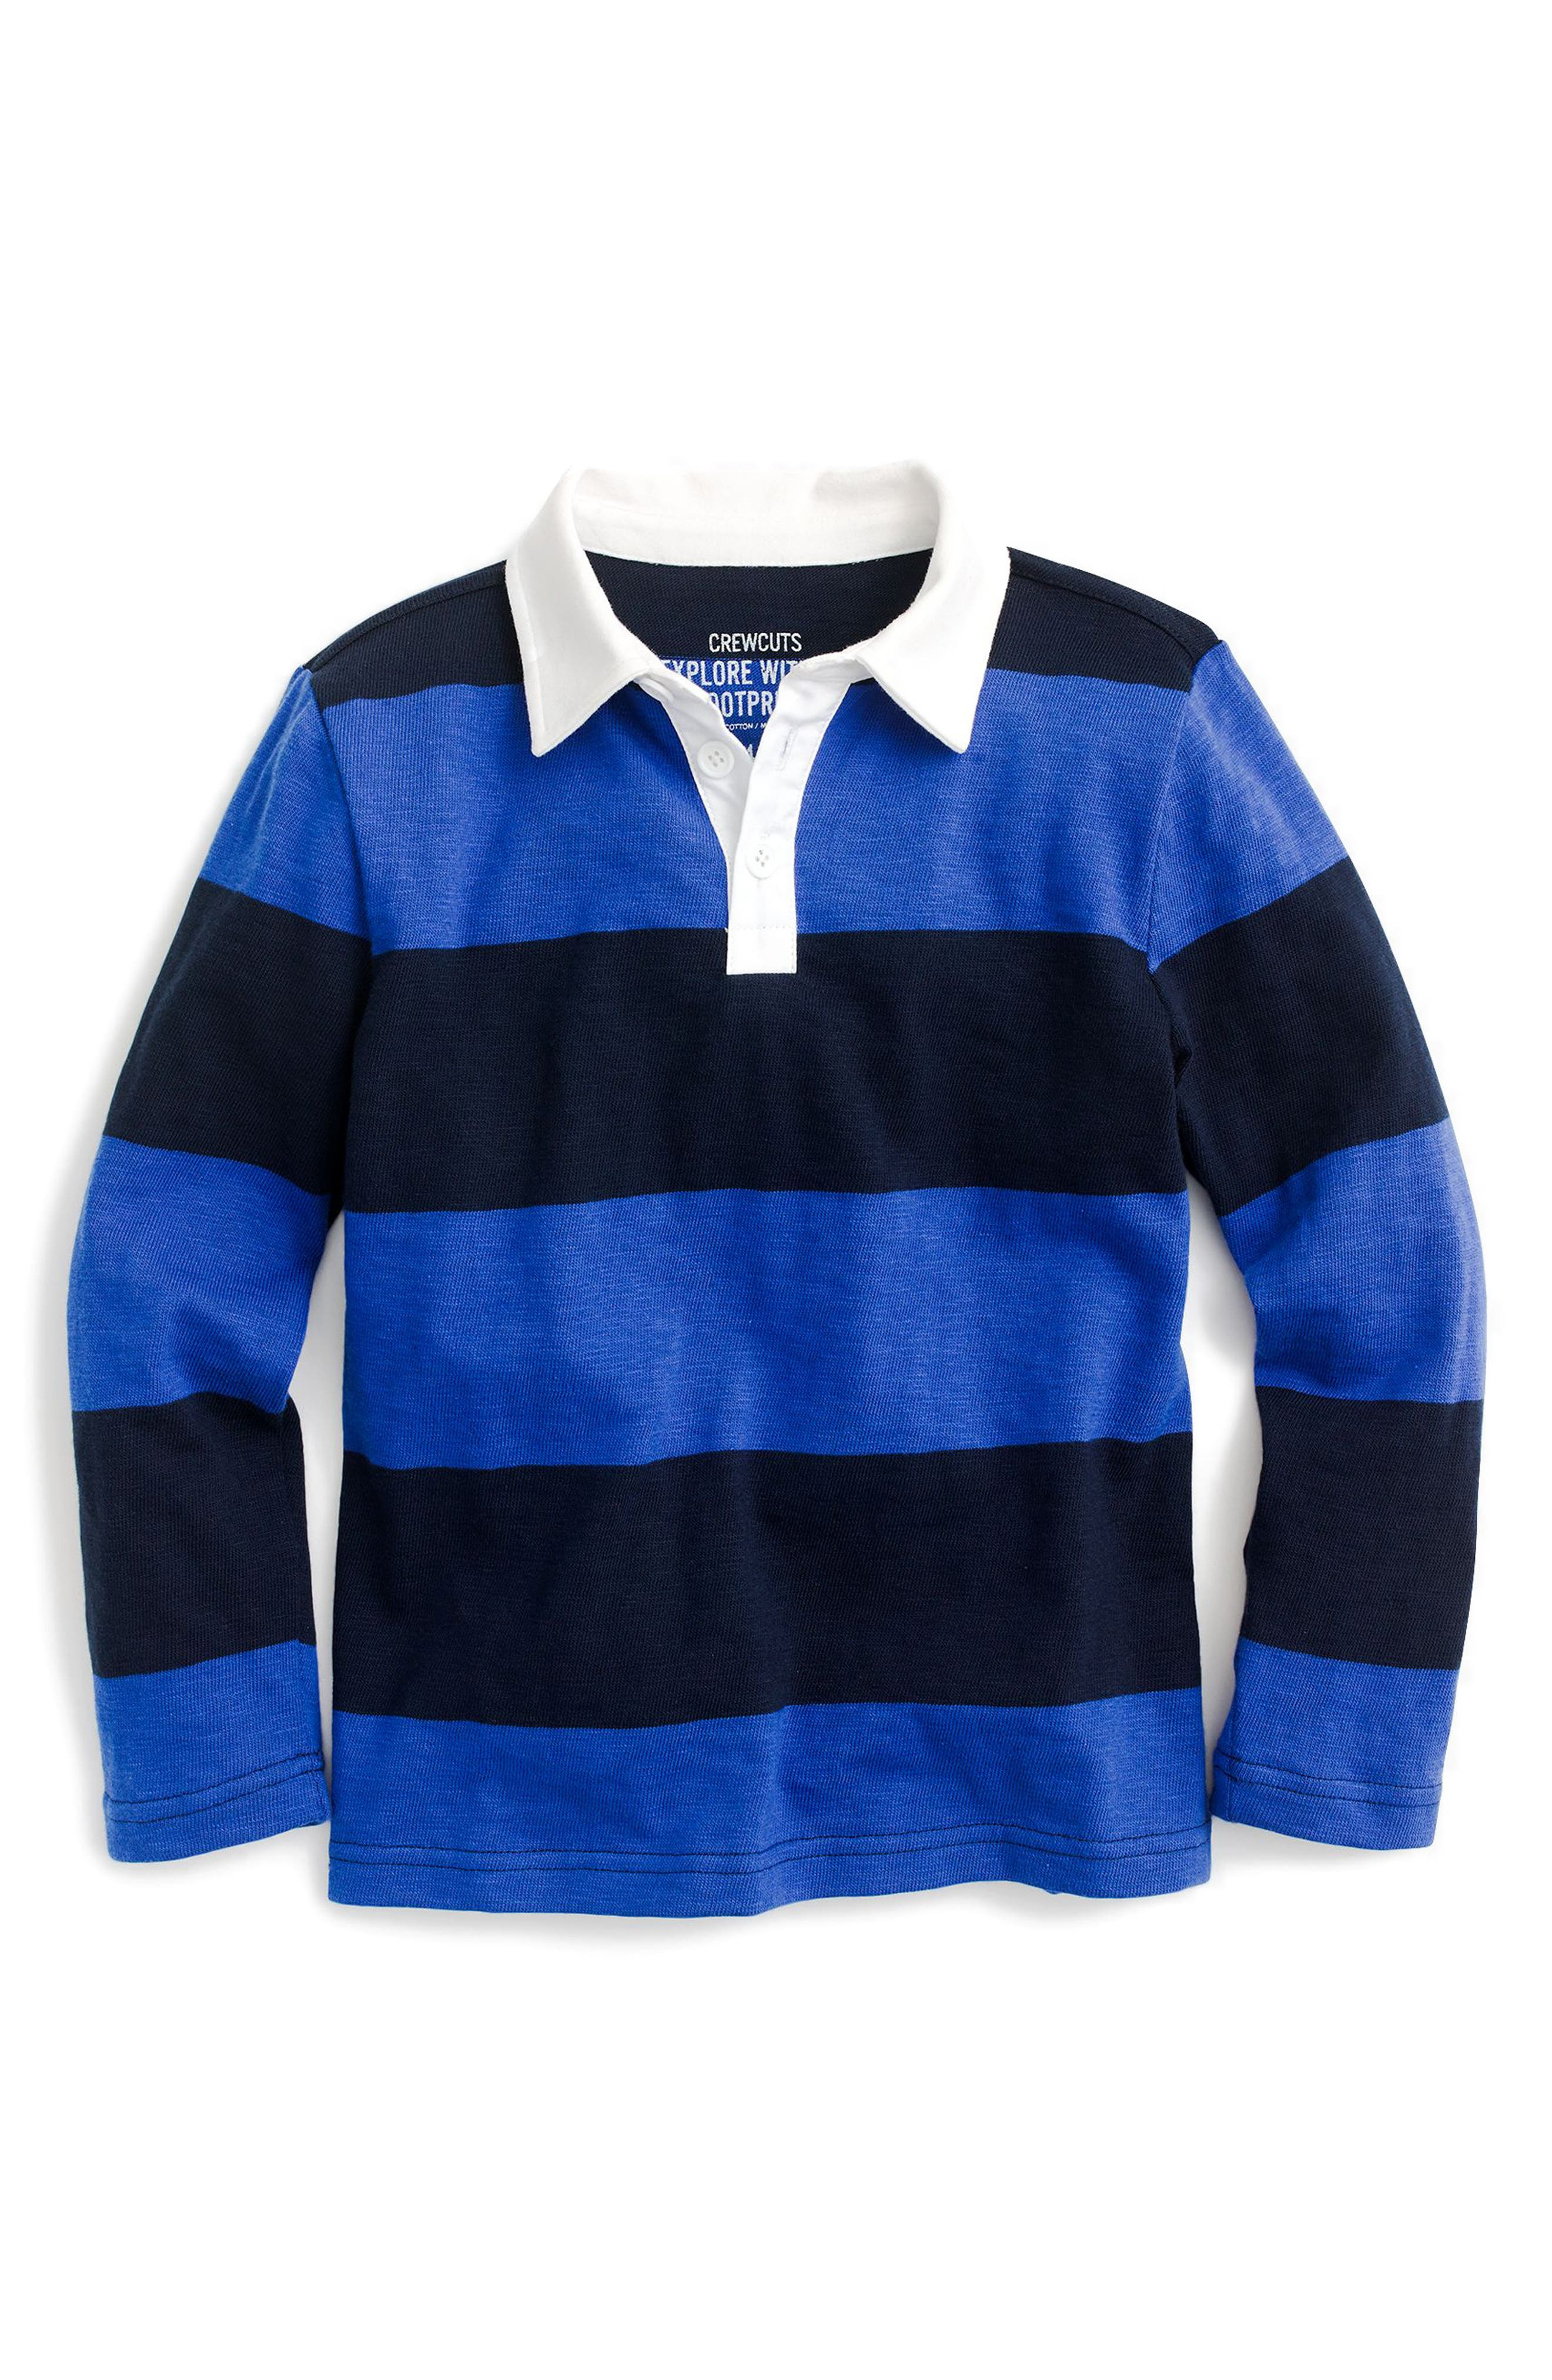 Main Image - crewcuts by J.Crew Striped Rugby Shirt (Toddler Boys, Little Boys & Big Boys)